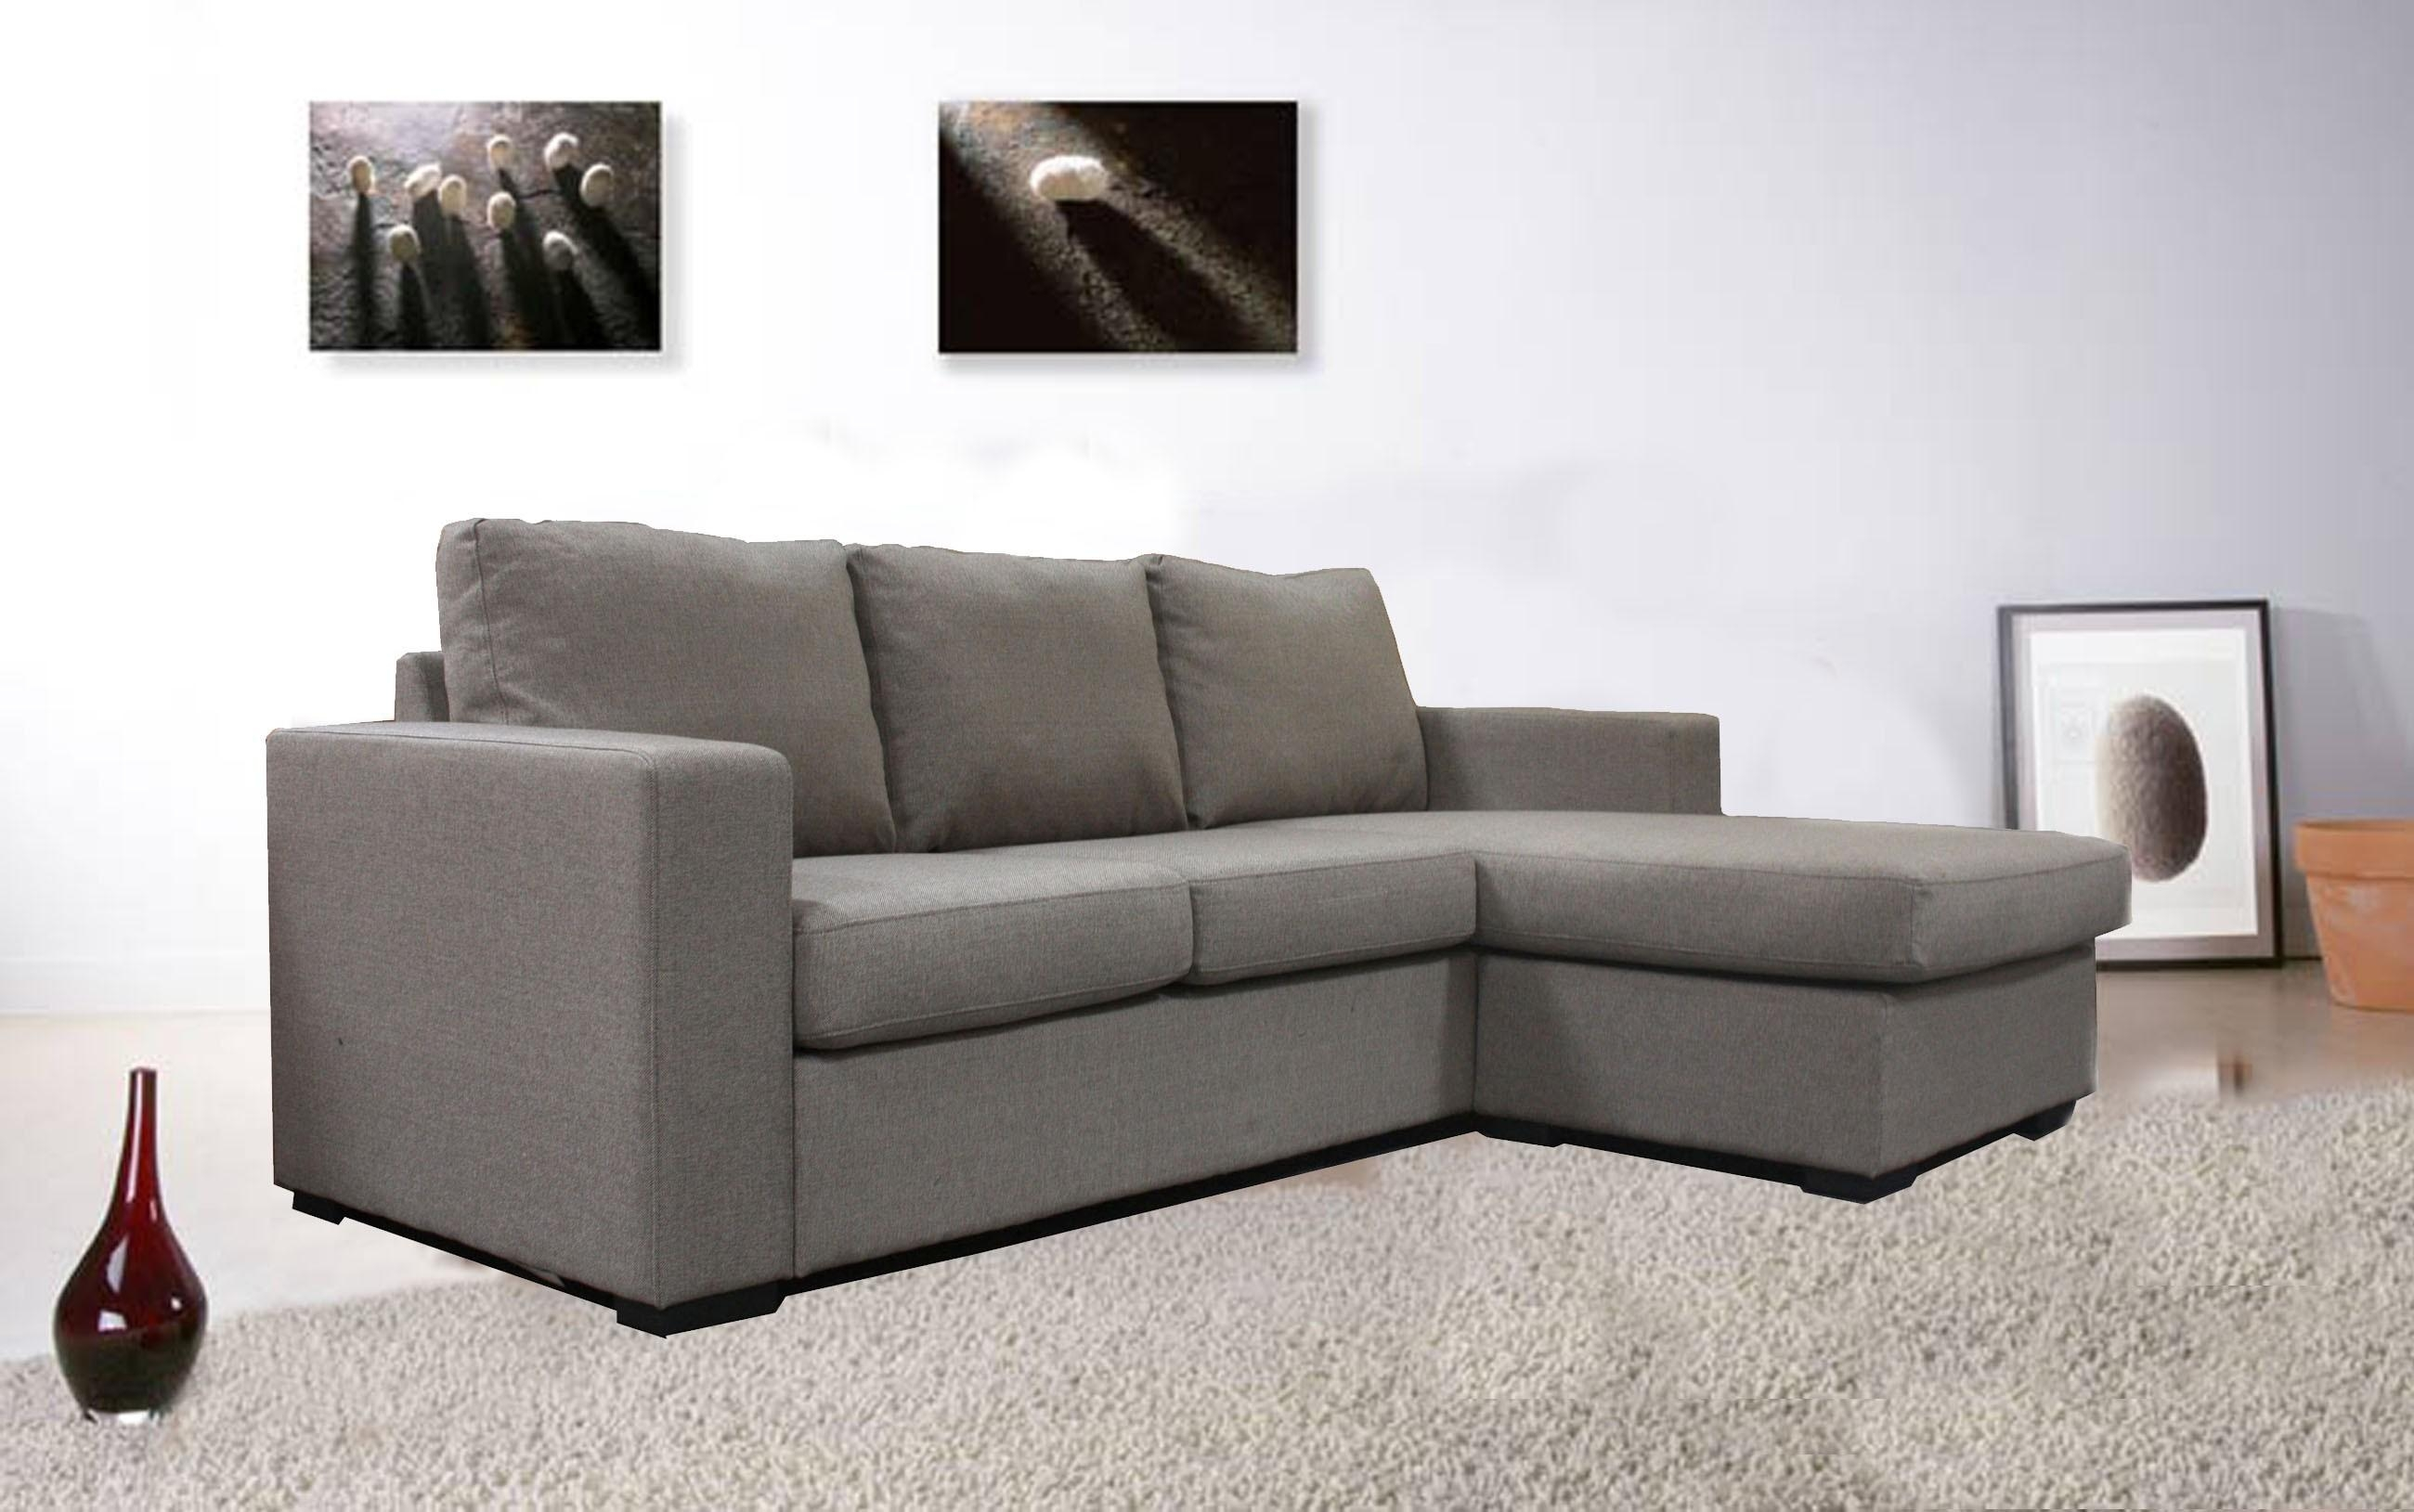 Short Sectional Sofa | Sofa Gallery | Kengire With Short Sectional Sofas (Image 17 of 20)